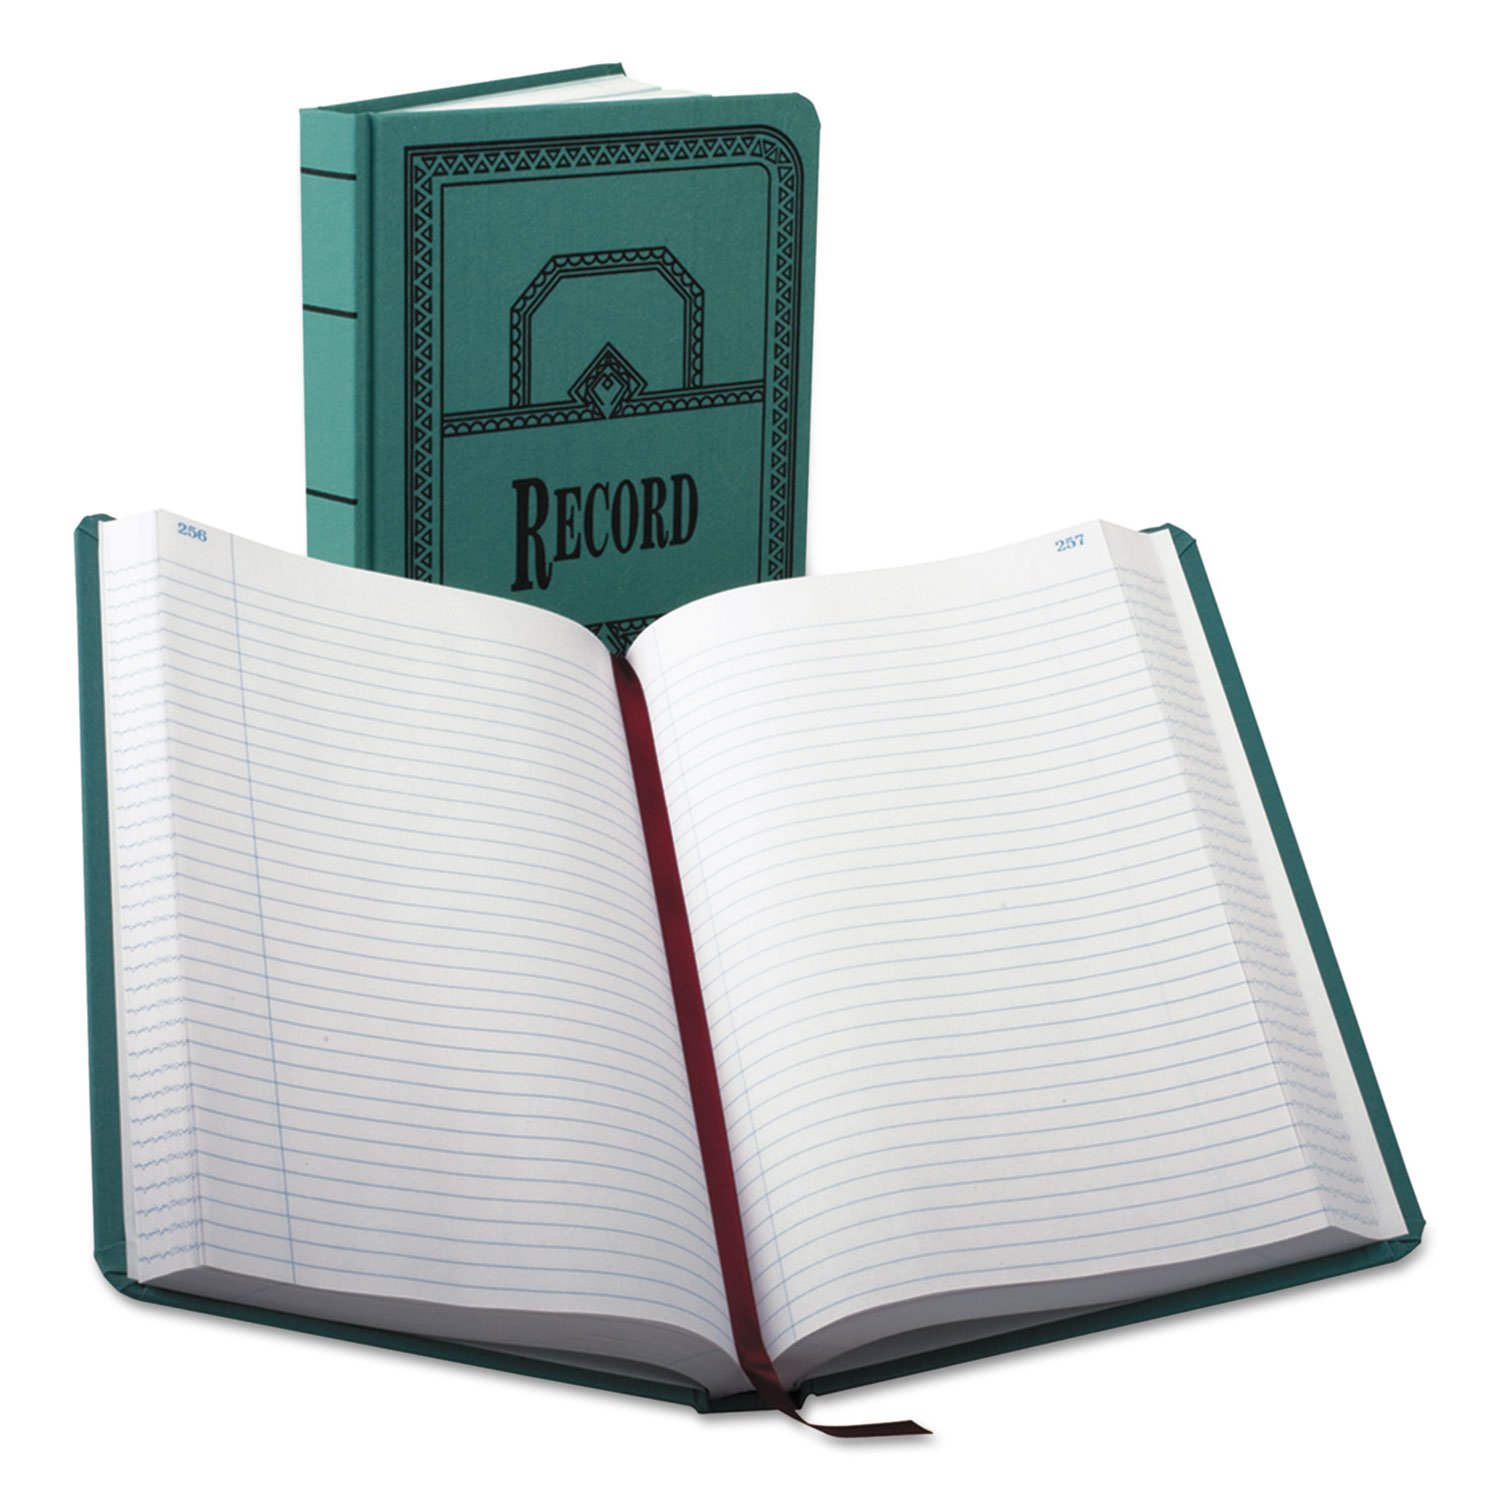 Boorum & Pease 66500R Account Book, Record-Ruled, 500 Pages, 12-1/8-Inch x7-5/8-Inch, Blue by BOR66500R